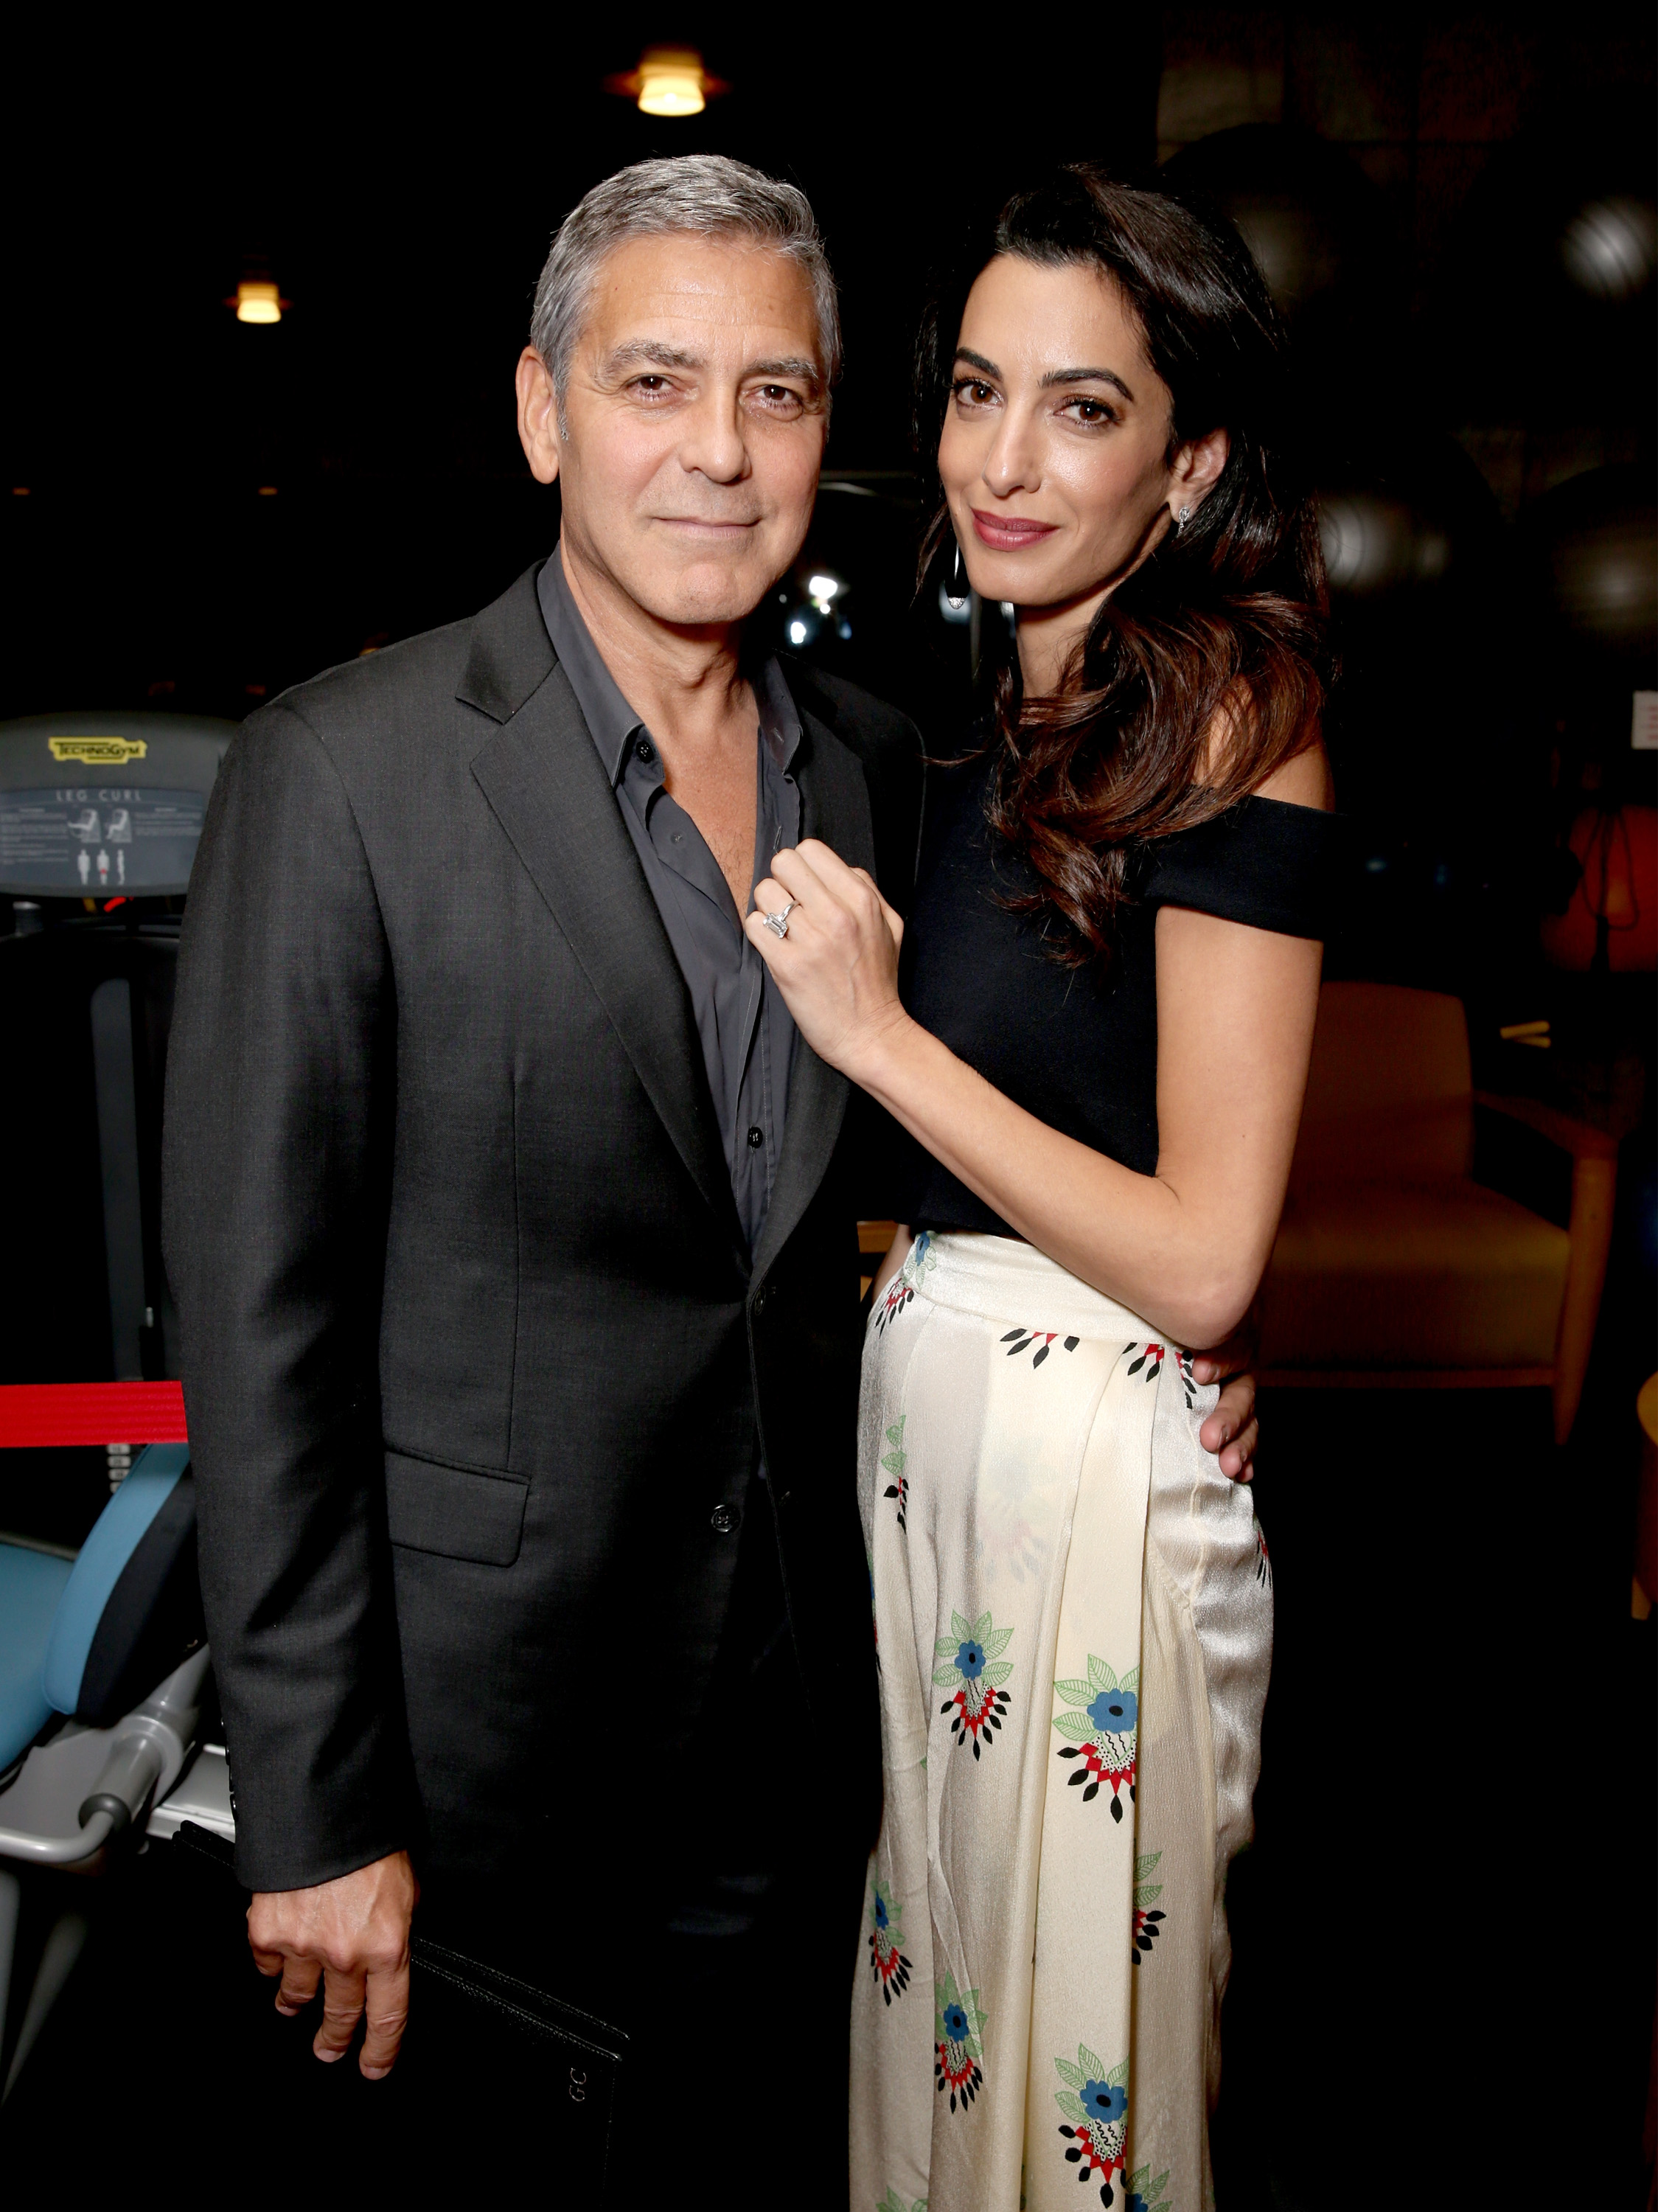 LOS ANGELES, CA - OCTOBER 01:  Host George Clooney (L) and lawyer Amal Clooney attend the MPTF 95th anniversary celebration with  Hollywood's Night Under The Stars  at MPTF Wasserman Campus on October 1, 2016 in Los Angeles, California.  (Photo by Todd Williamson/Getty Images for MPTF)